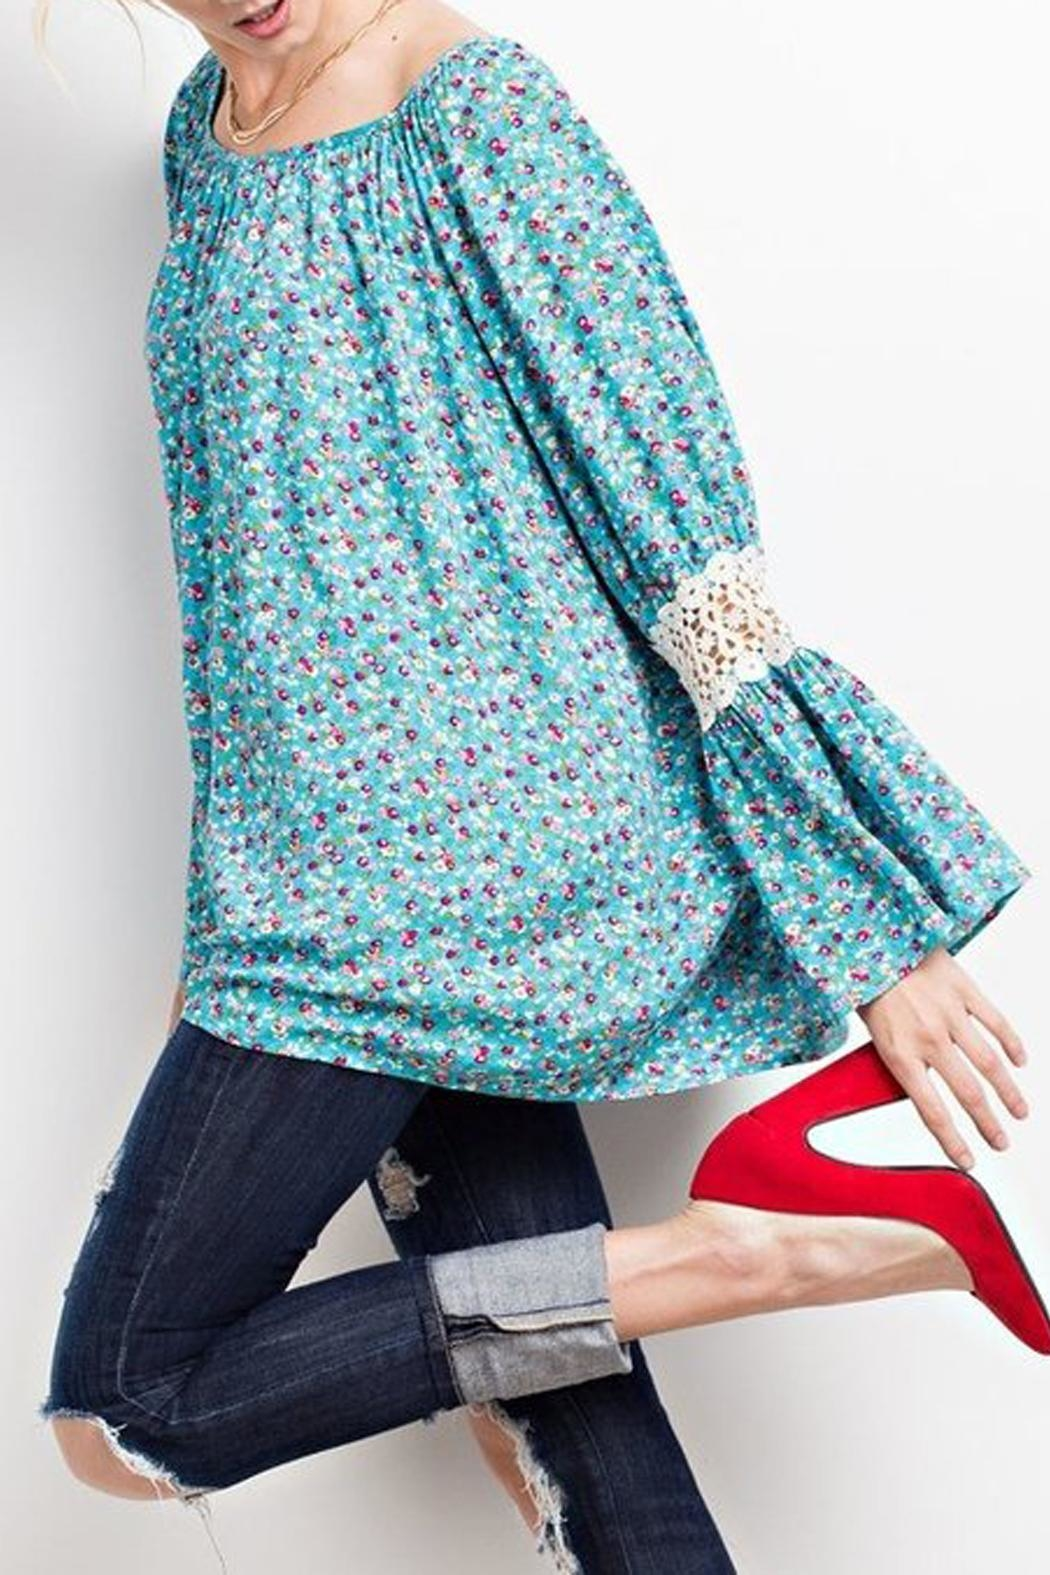 easel Turquoise-Blue Floral-Print Blouse - Front Full Image